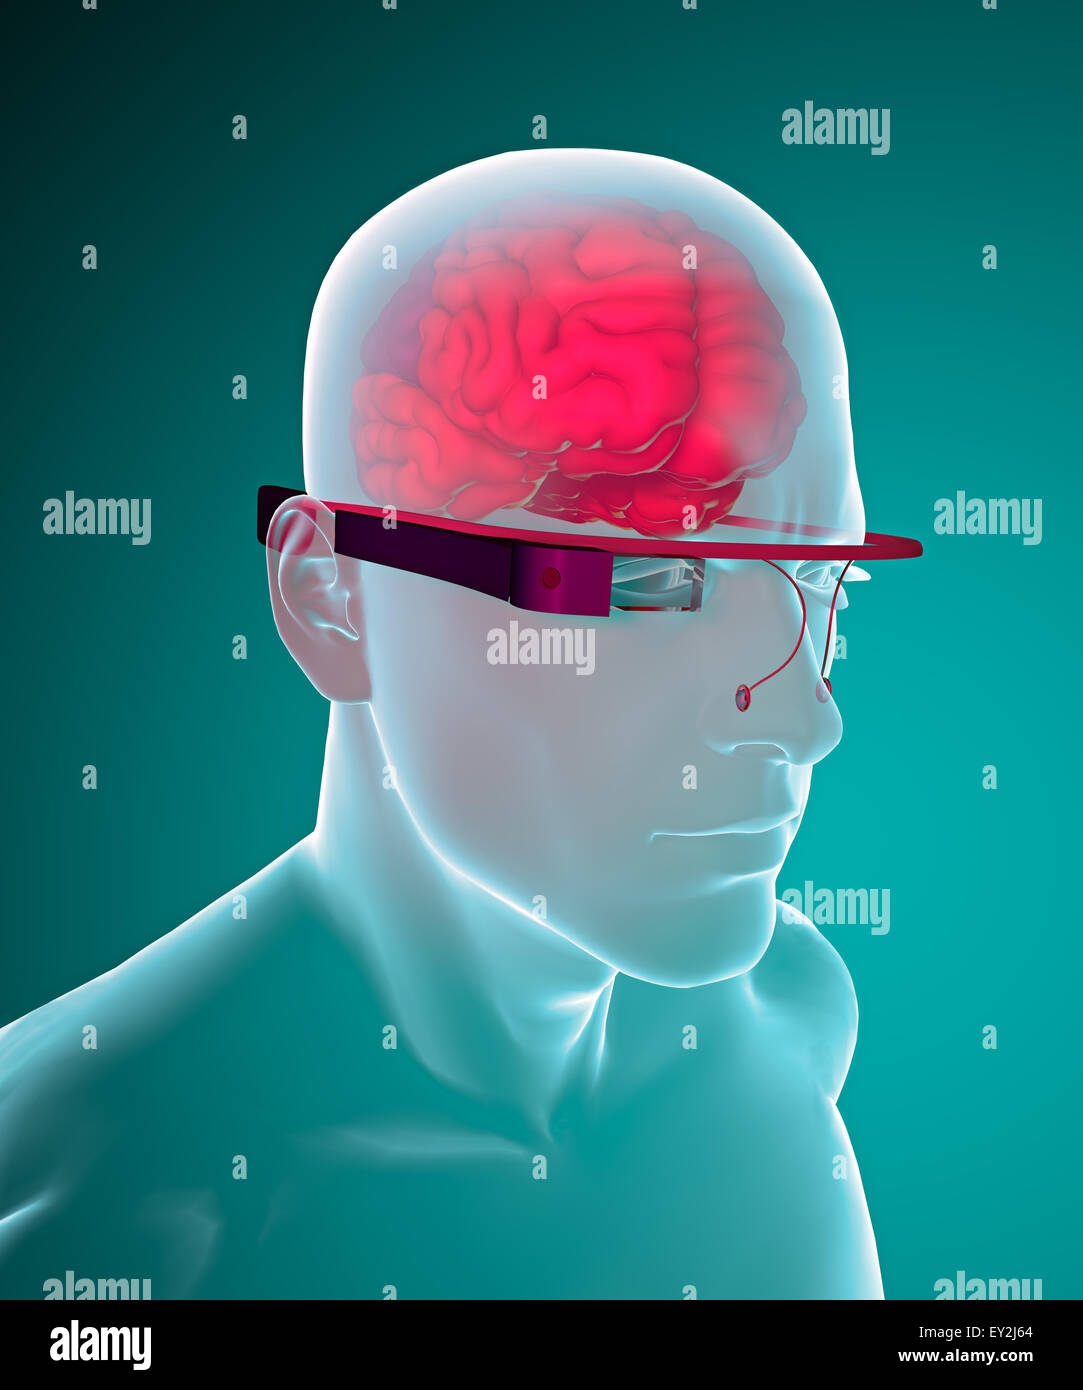 Brain Glasses Stockfotos & Brain Glasses Bilder - Alamy